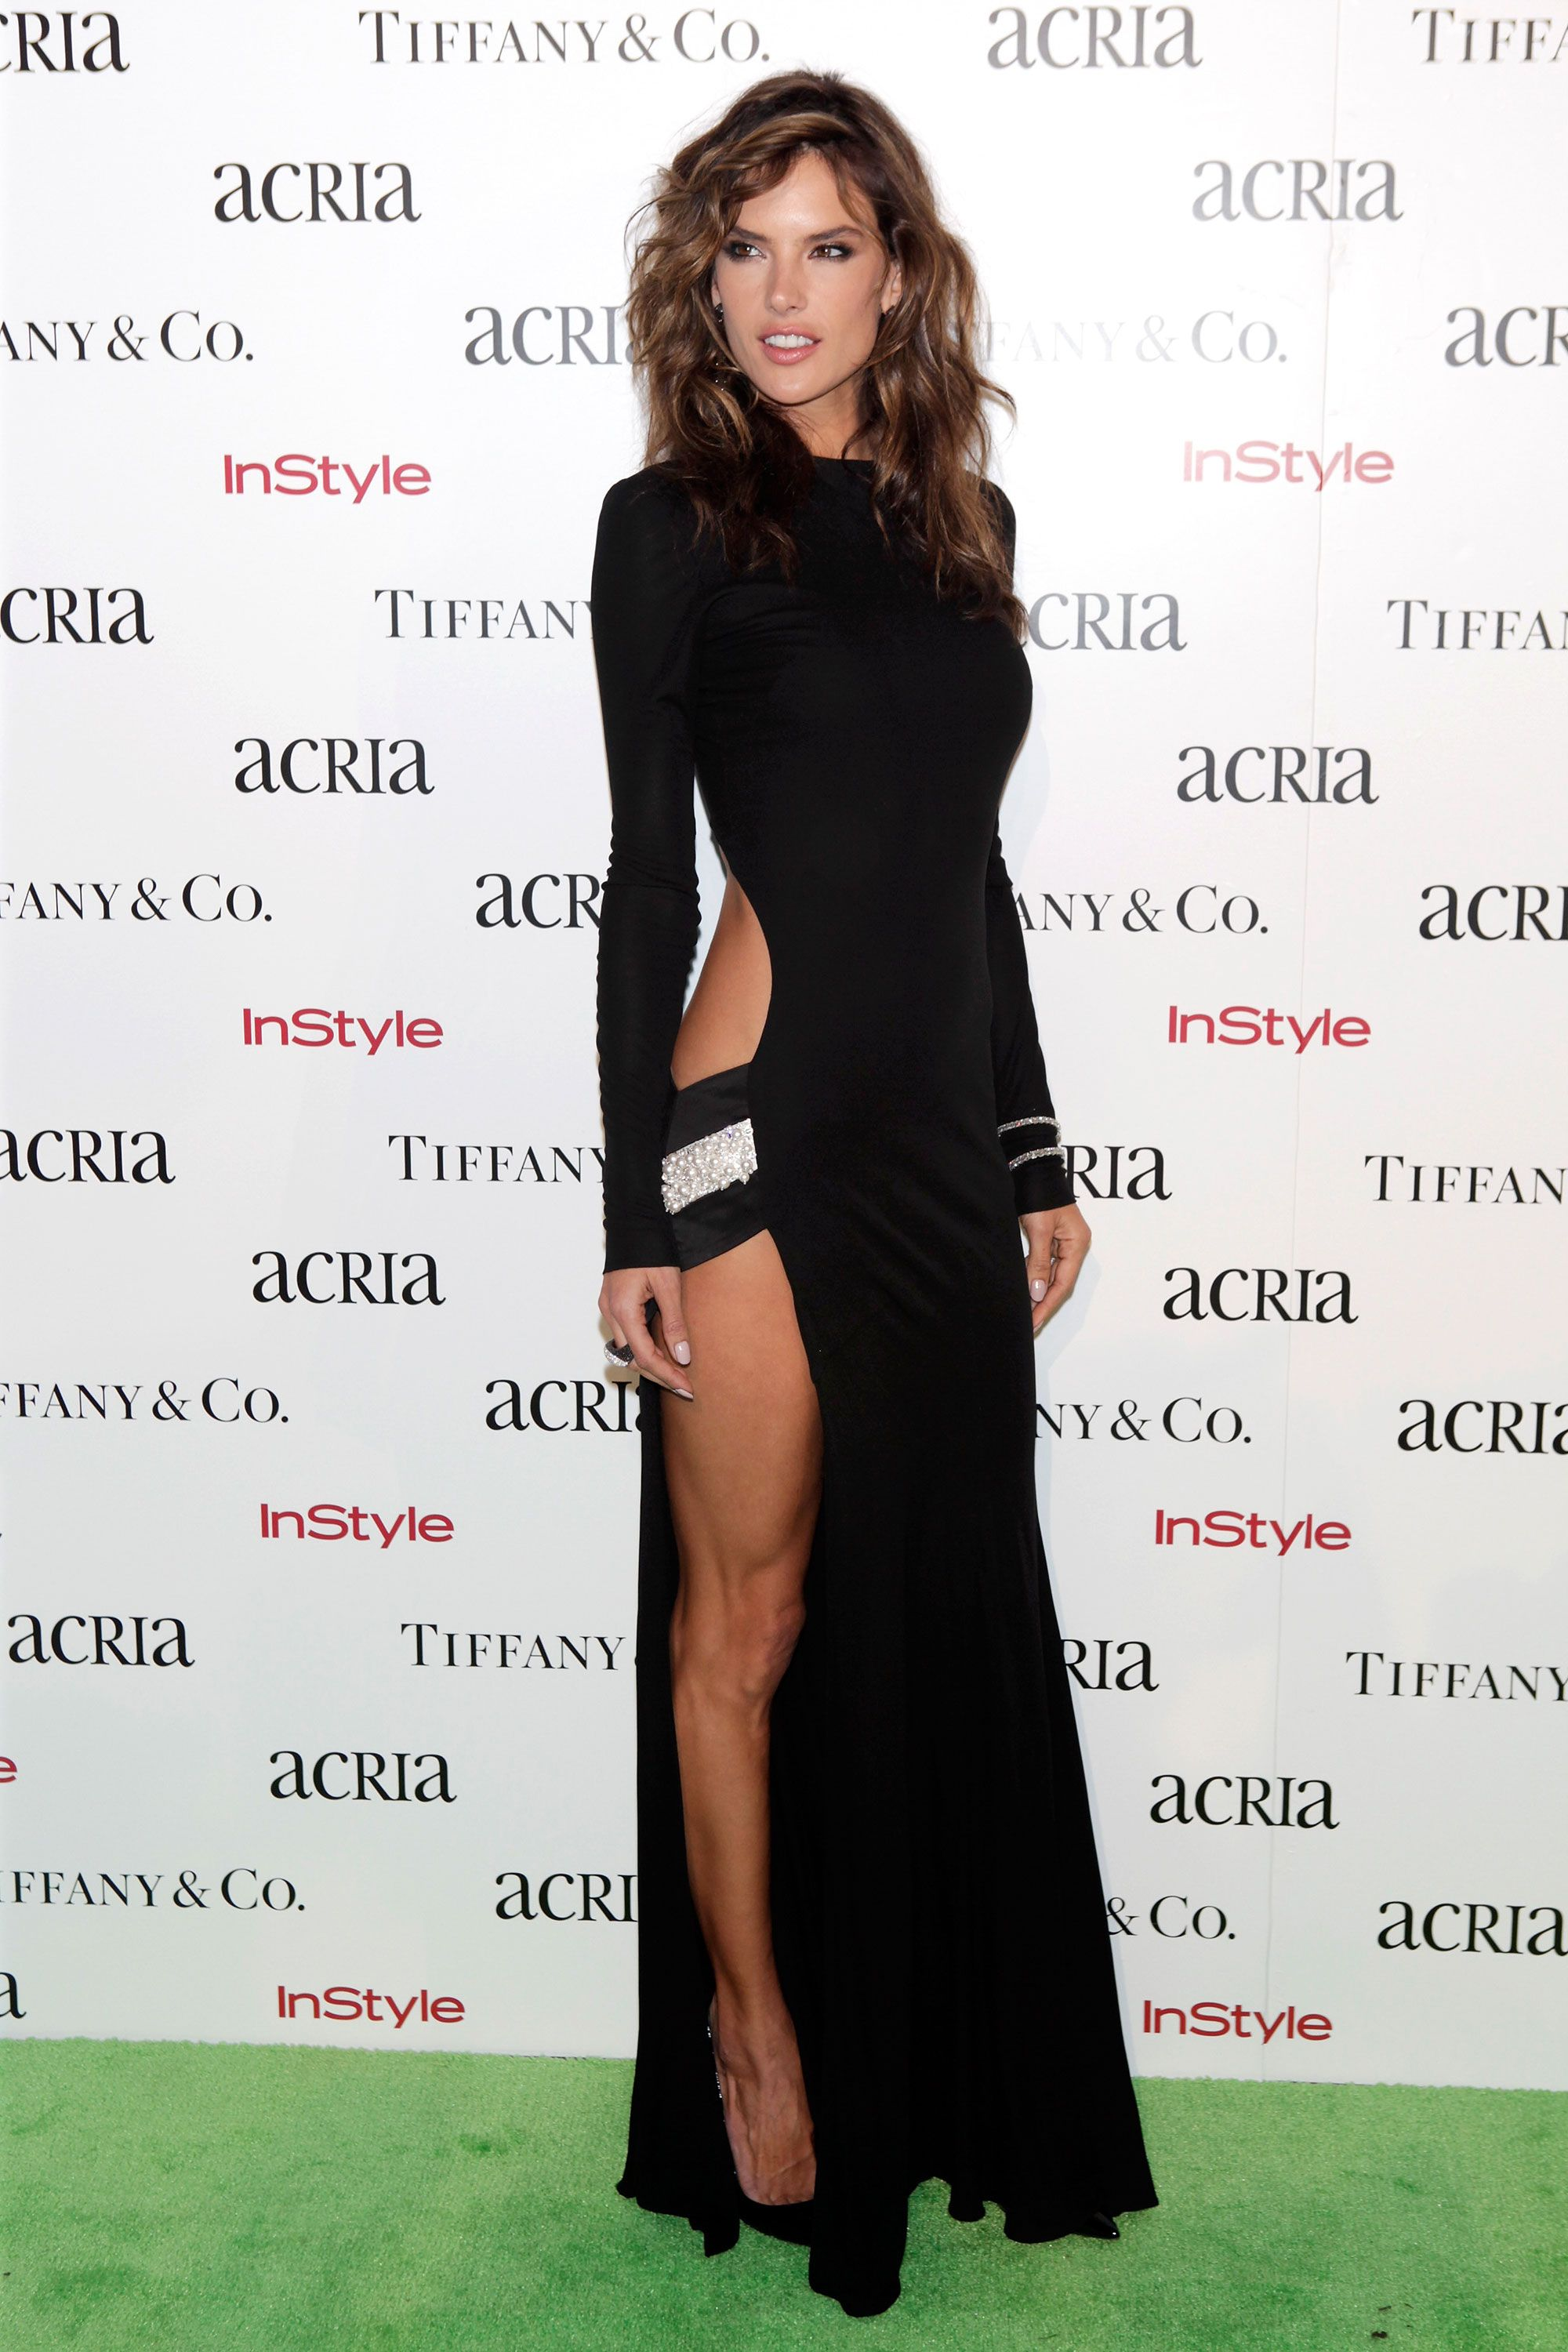 19d9c7748 Celebrity Red Carpet Poses with High Slit - The Best Celebrity Thigh ...